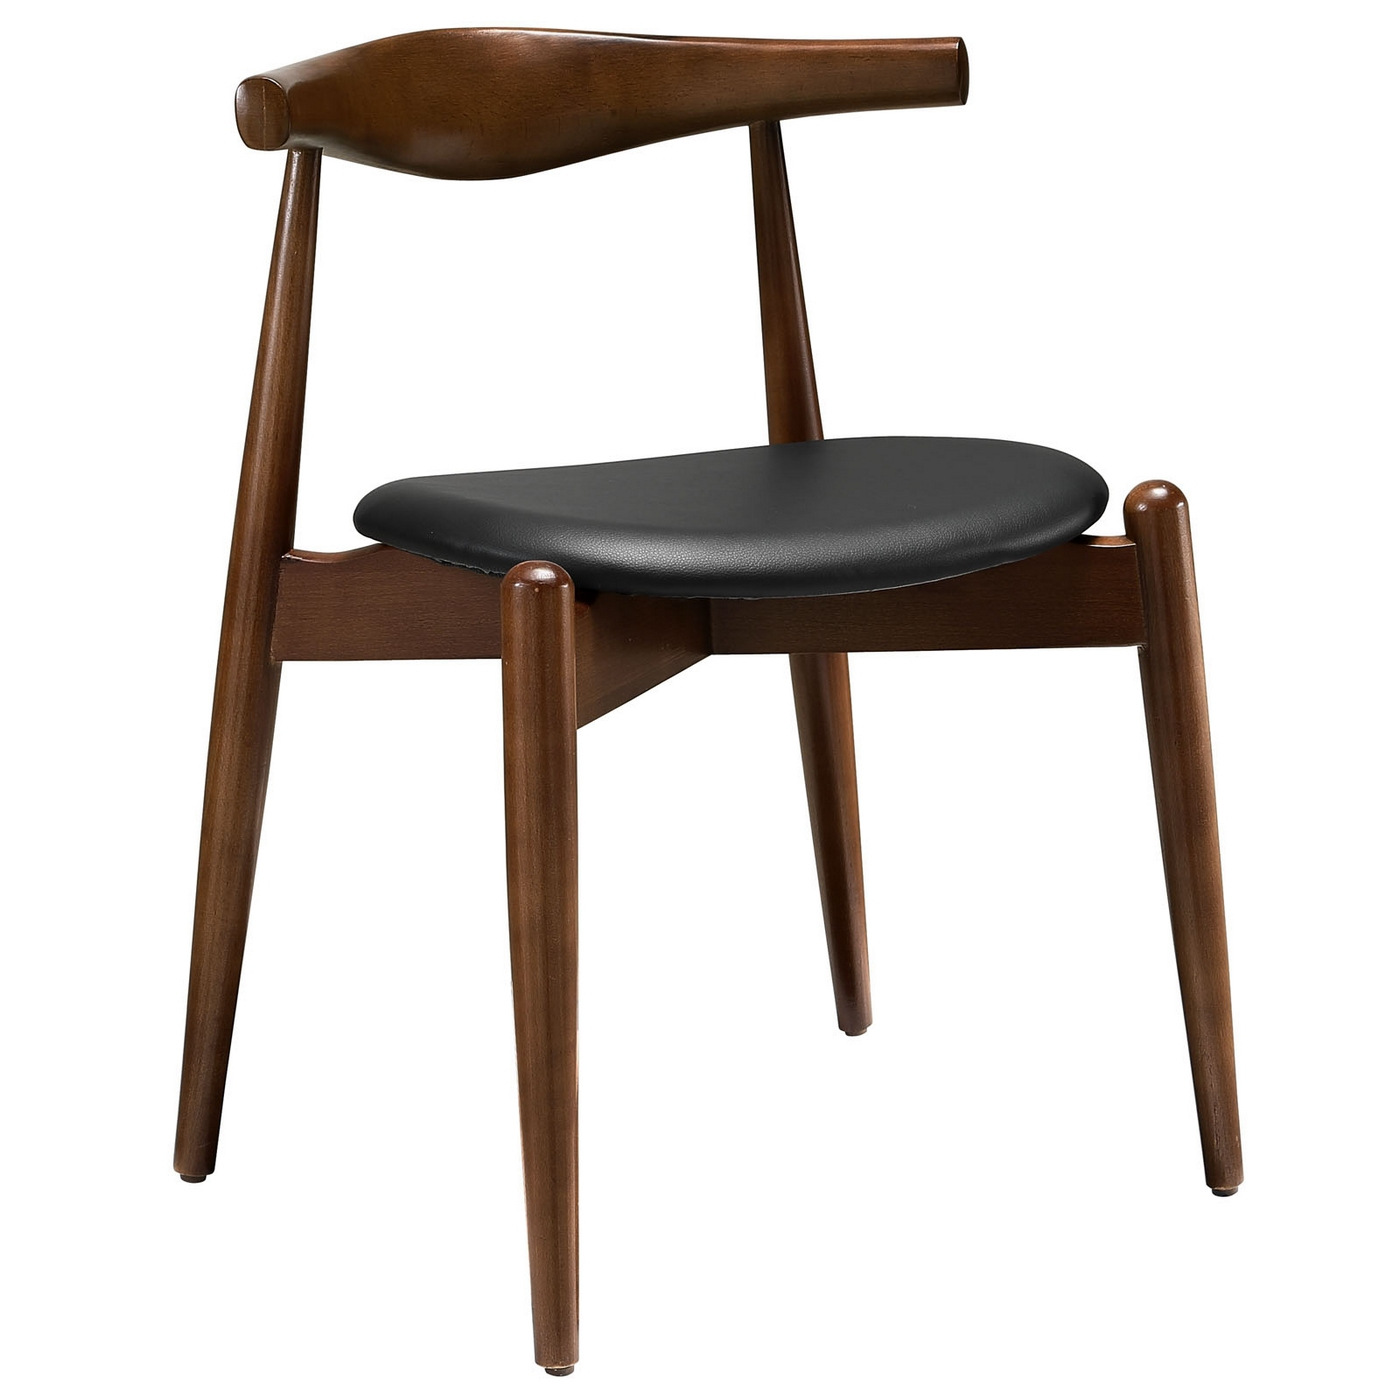 stalwart contemporary solid wood dining side chair with